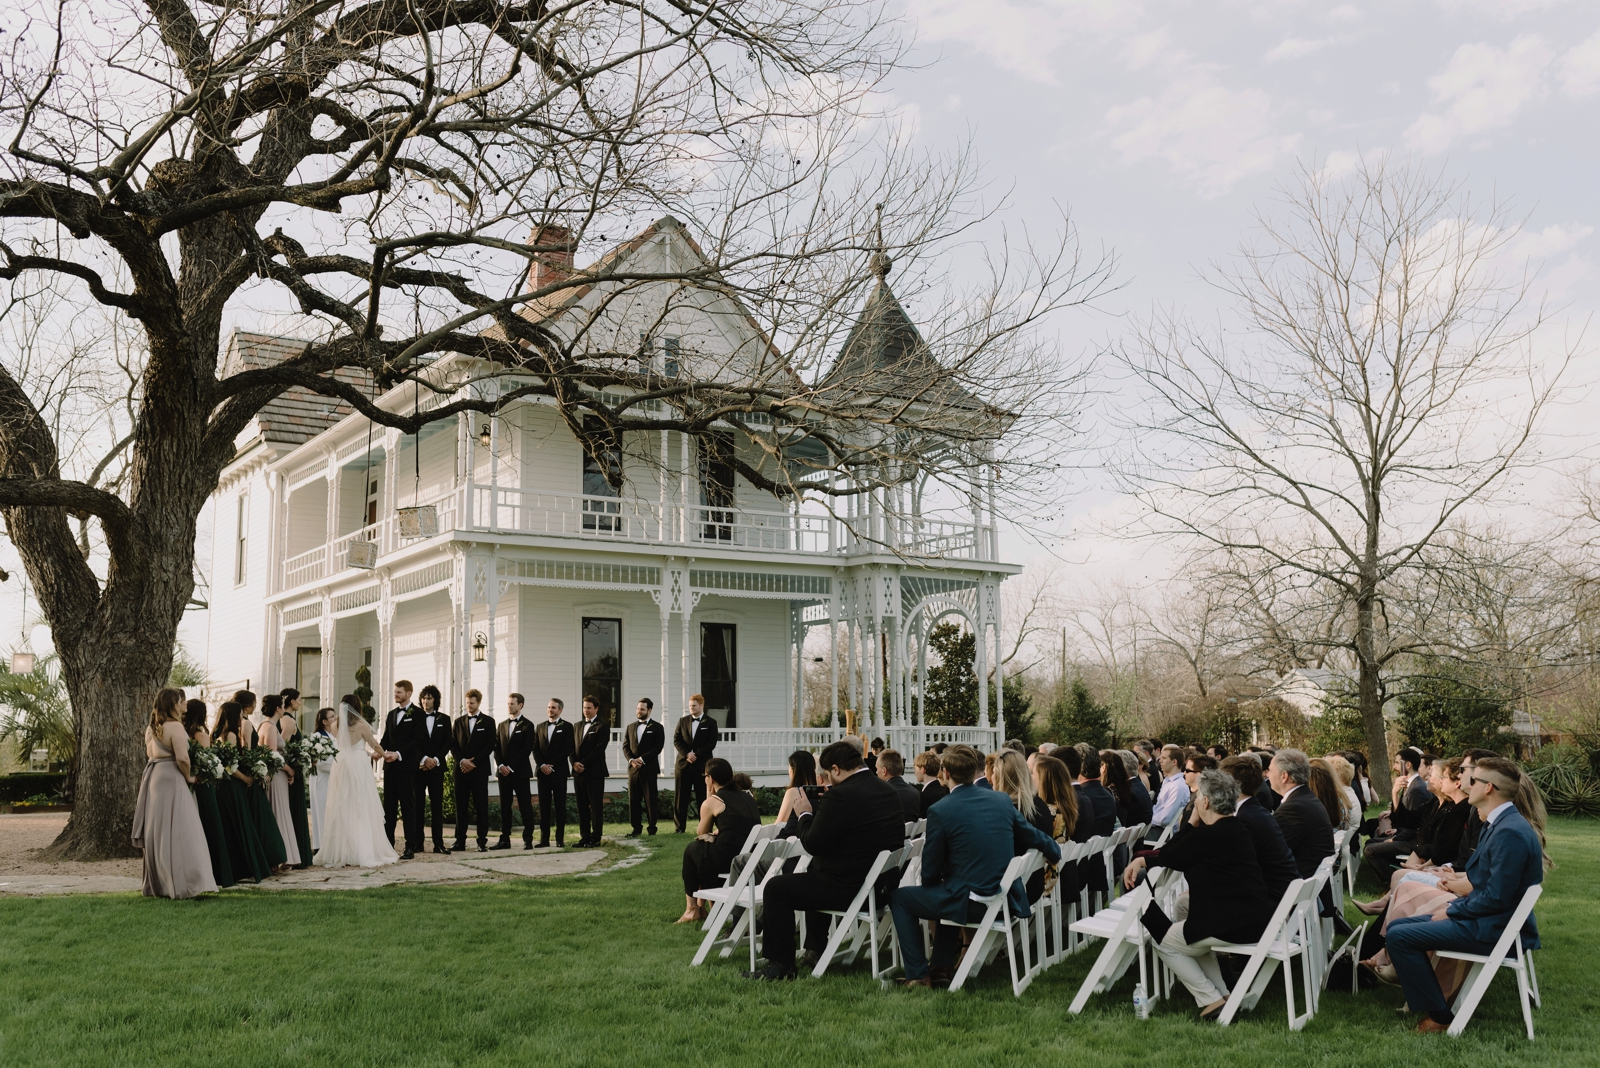 Wedding ceremony under the pecan tree at Barr Mansion on the outskirts of Austin